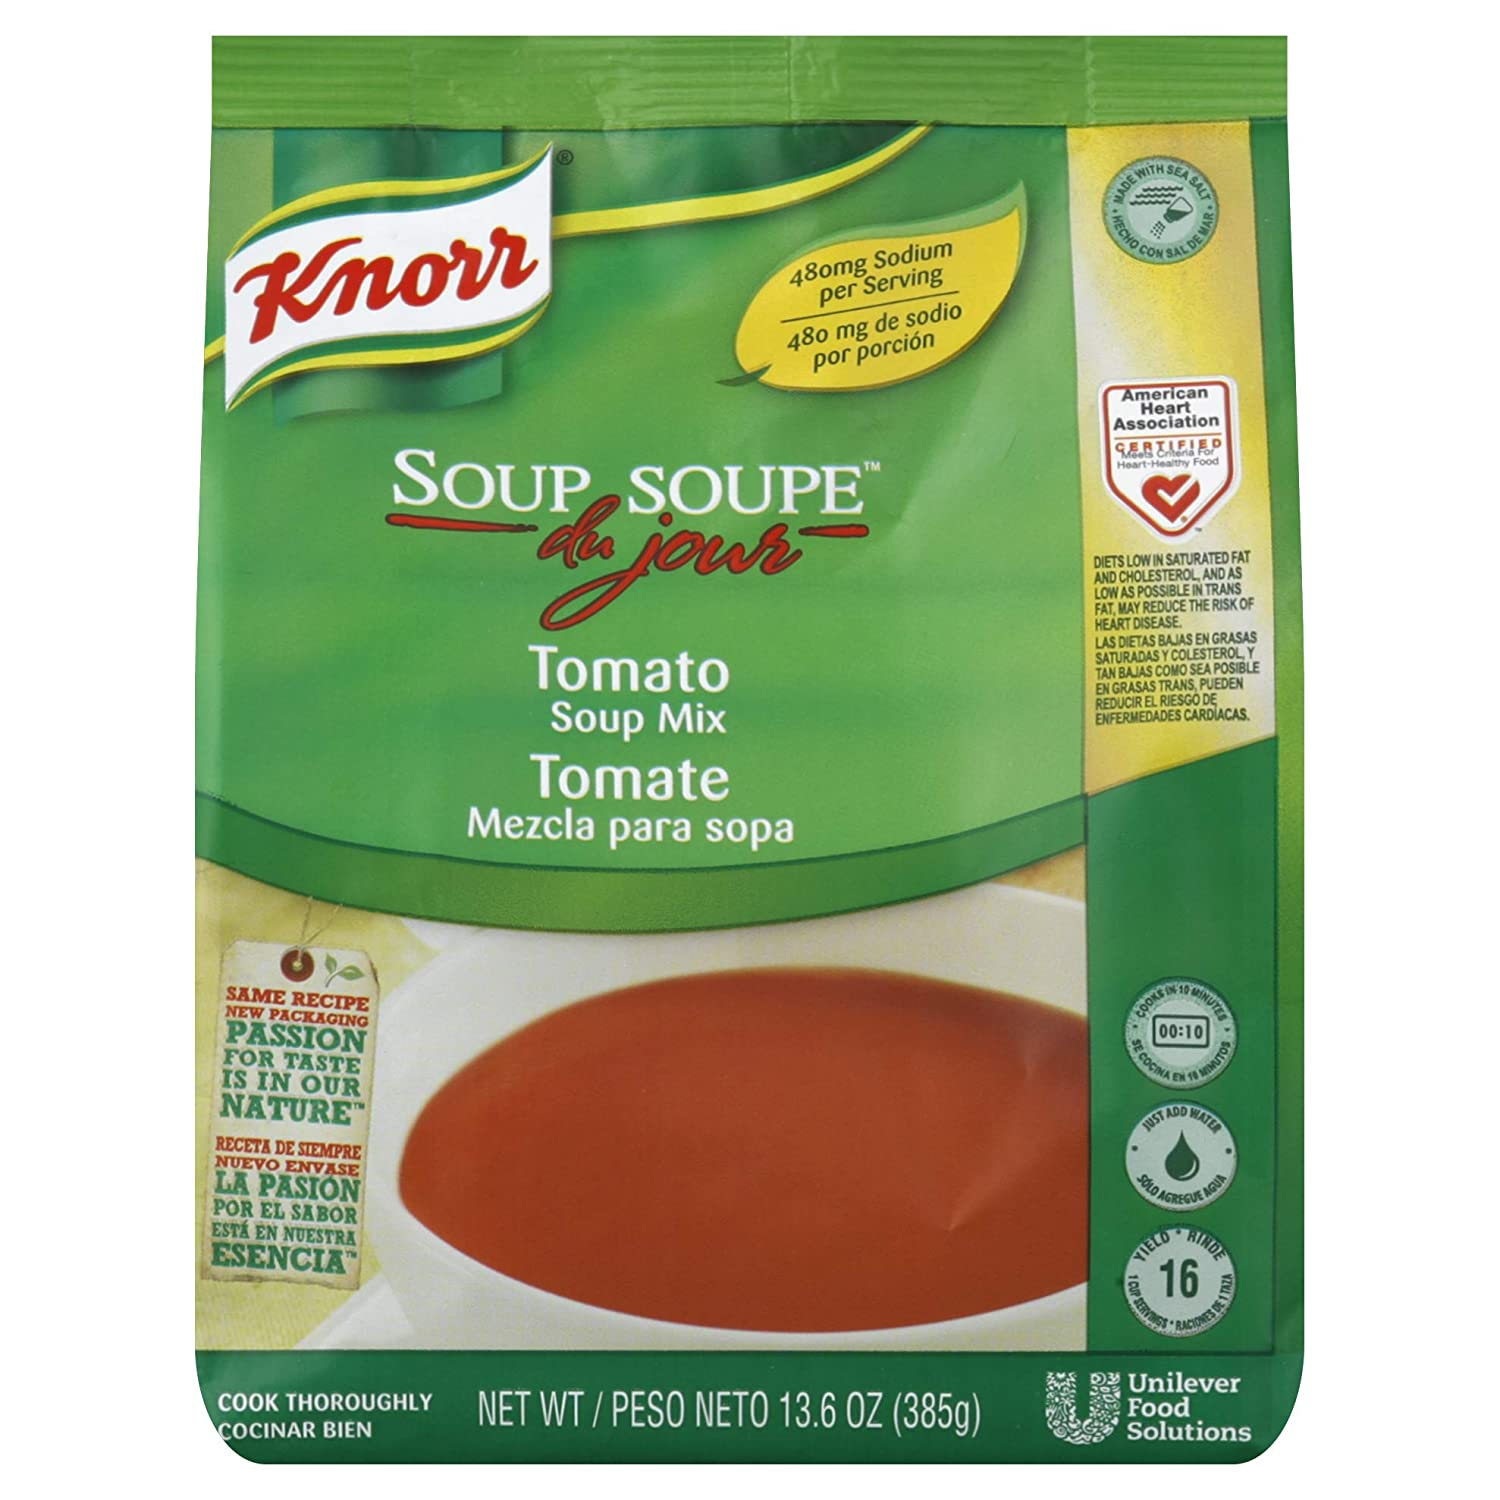 Amazon.com : Knorr Soup du Jour Mix Tomato Soup 13.6 oz, Pack of 4 : Grocery & Gourmet Food